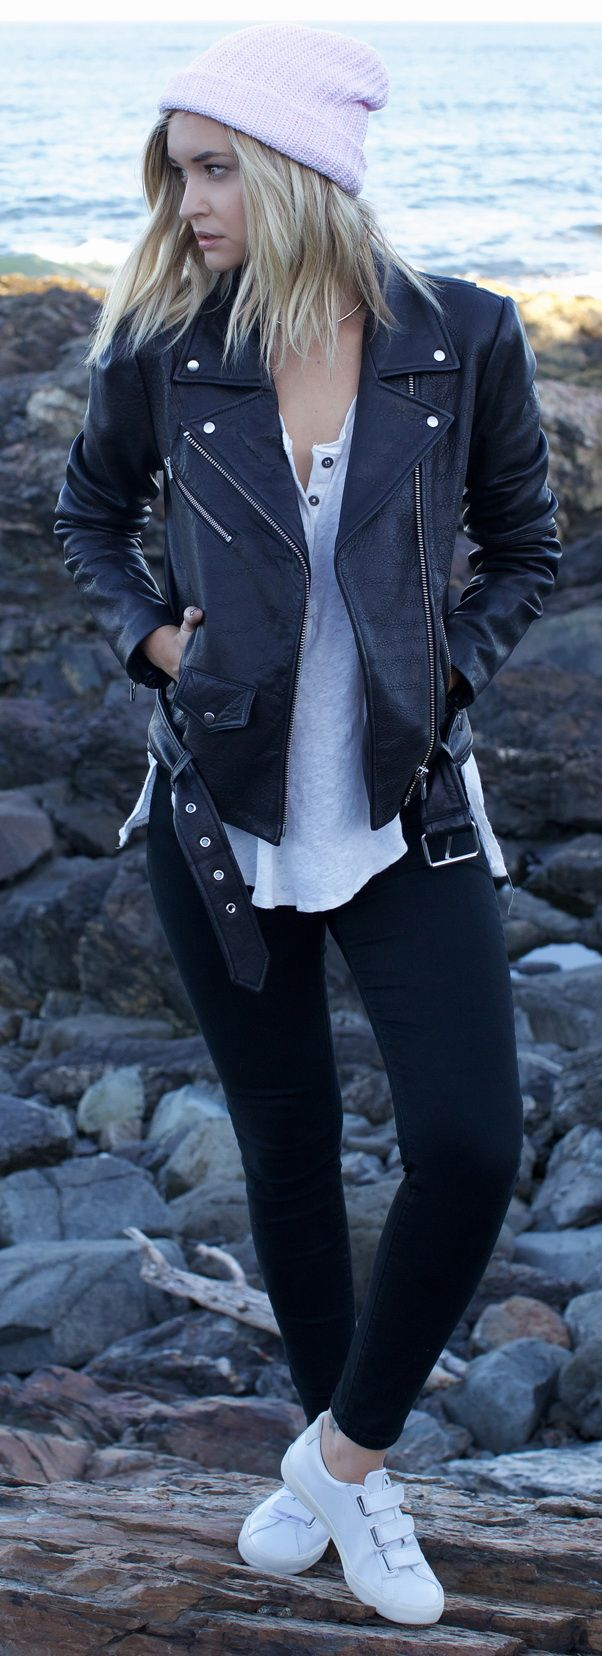 Leather Jacket – Veda via ANTHOM, top – Free People, pants – Urban Outfitters, shoes – veja via ANTHOM, Beanie – Daytrip Society